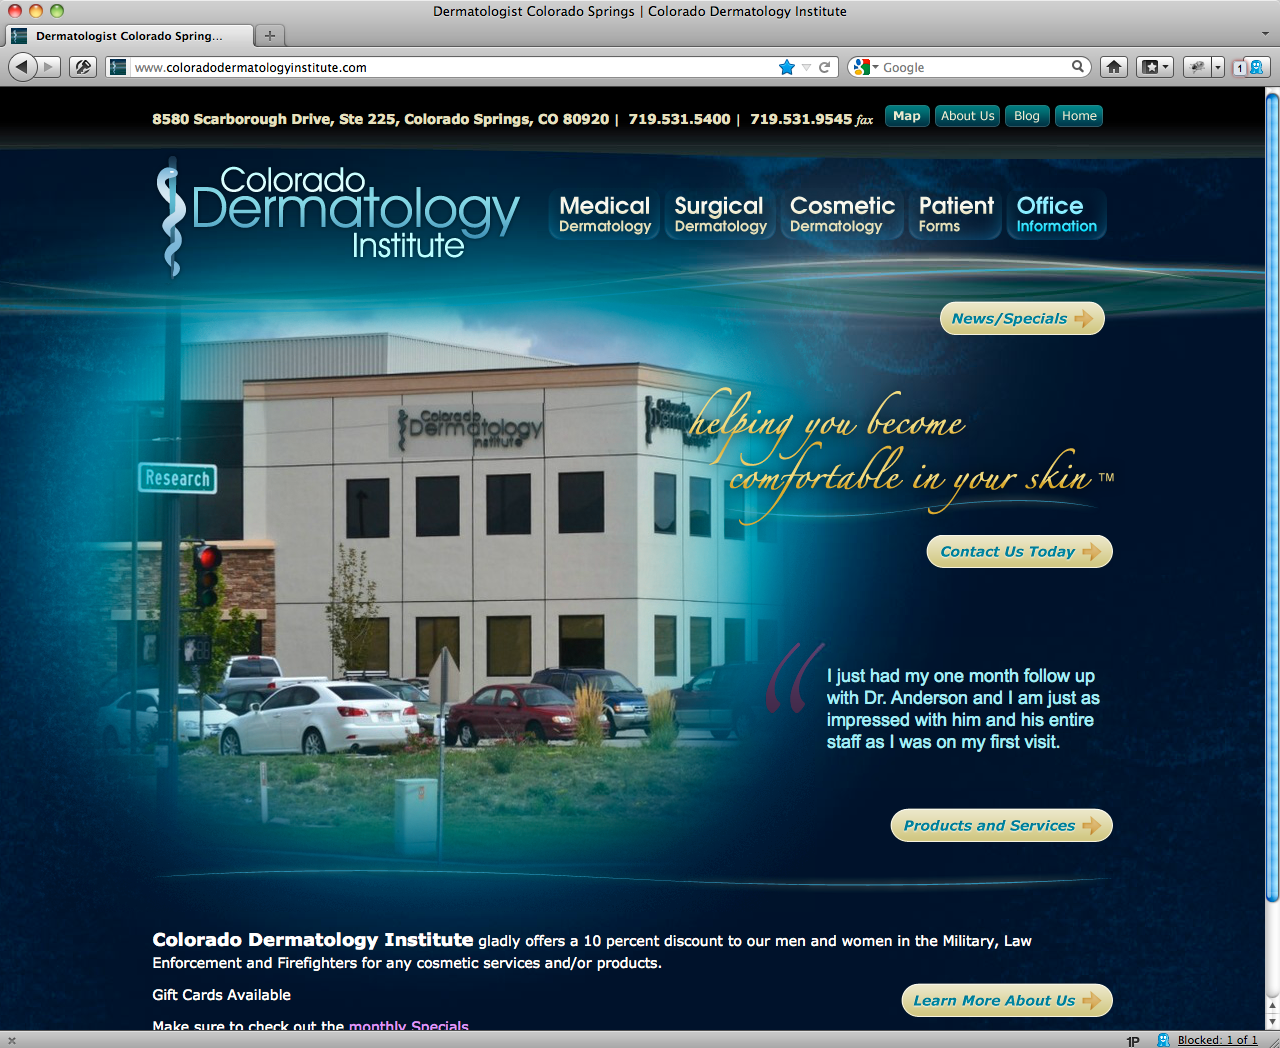 http://www.coloradodermatologyinstitute.com